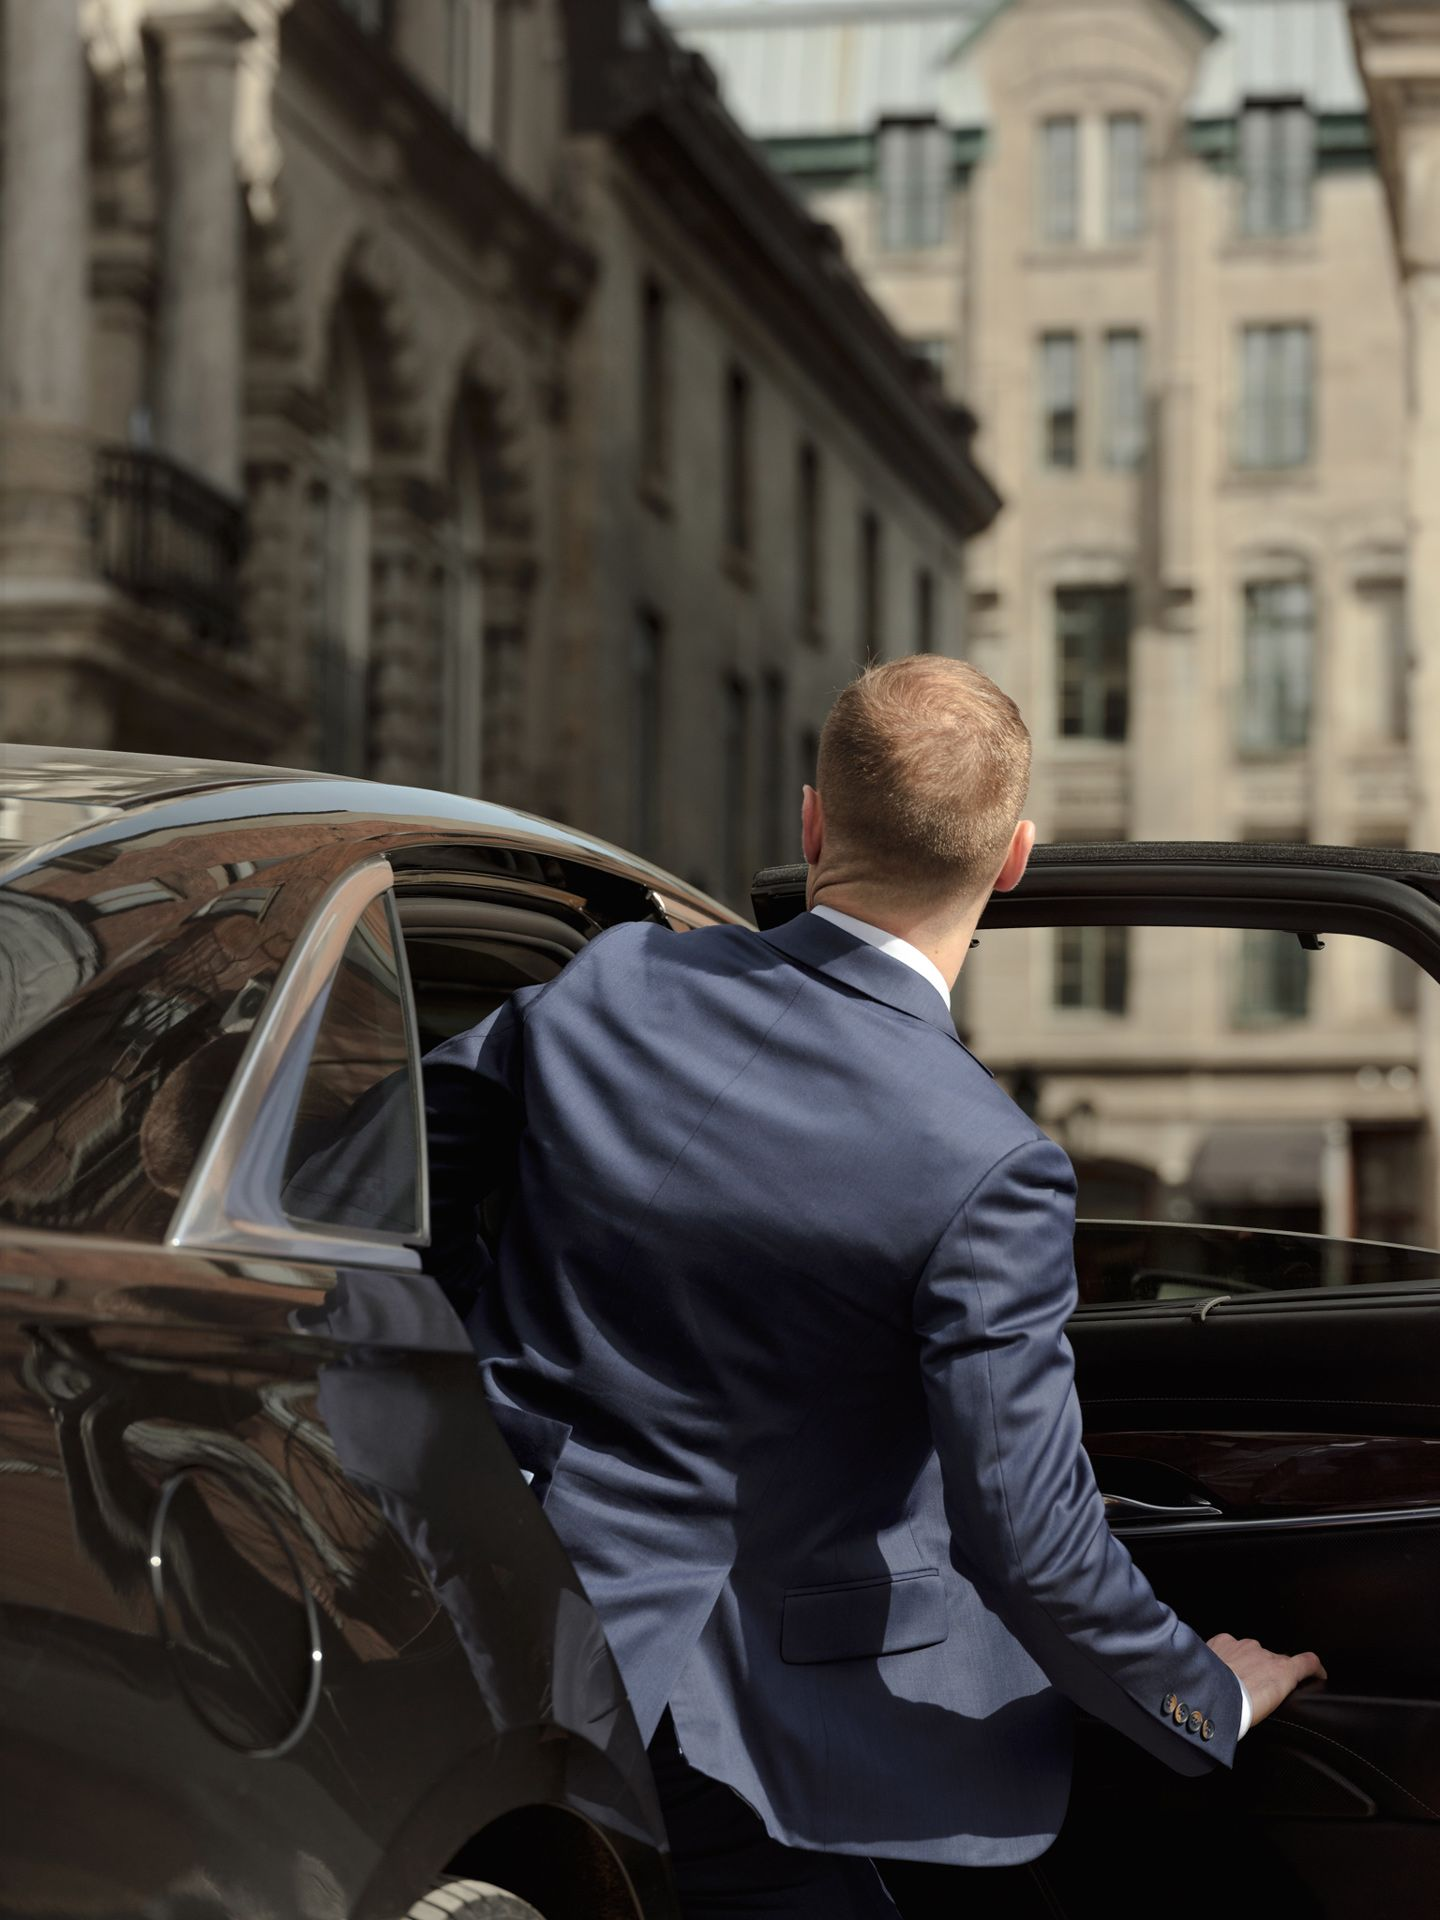 young man quickly getting in car wearing professional suit photographed by Alexi Hobbs for PSP